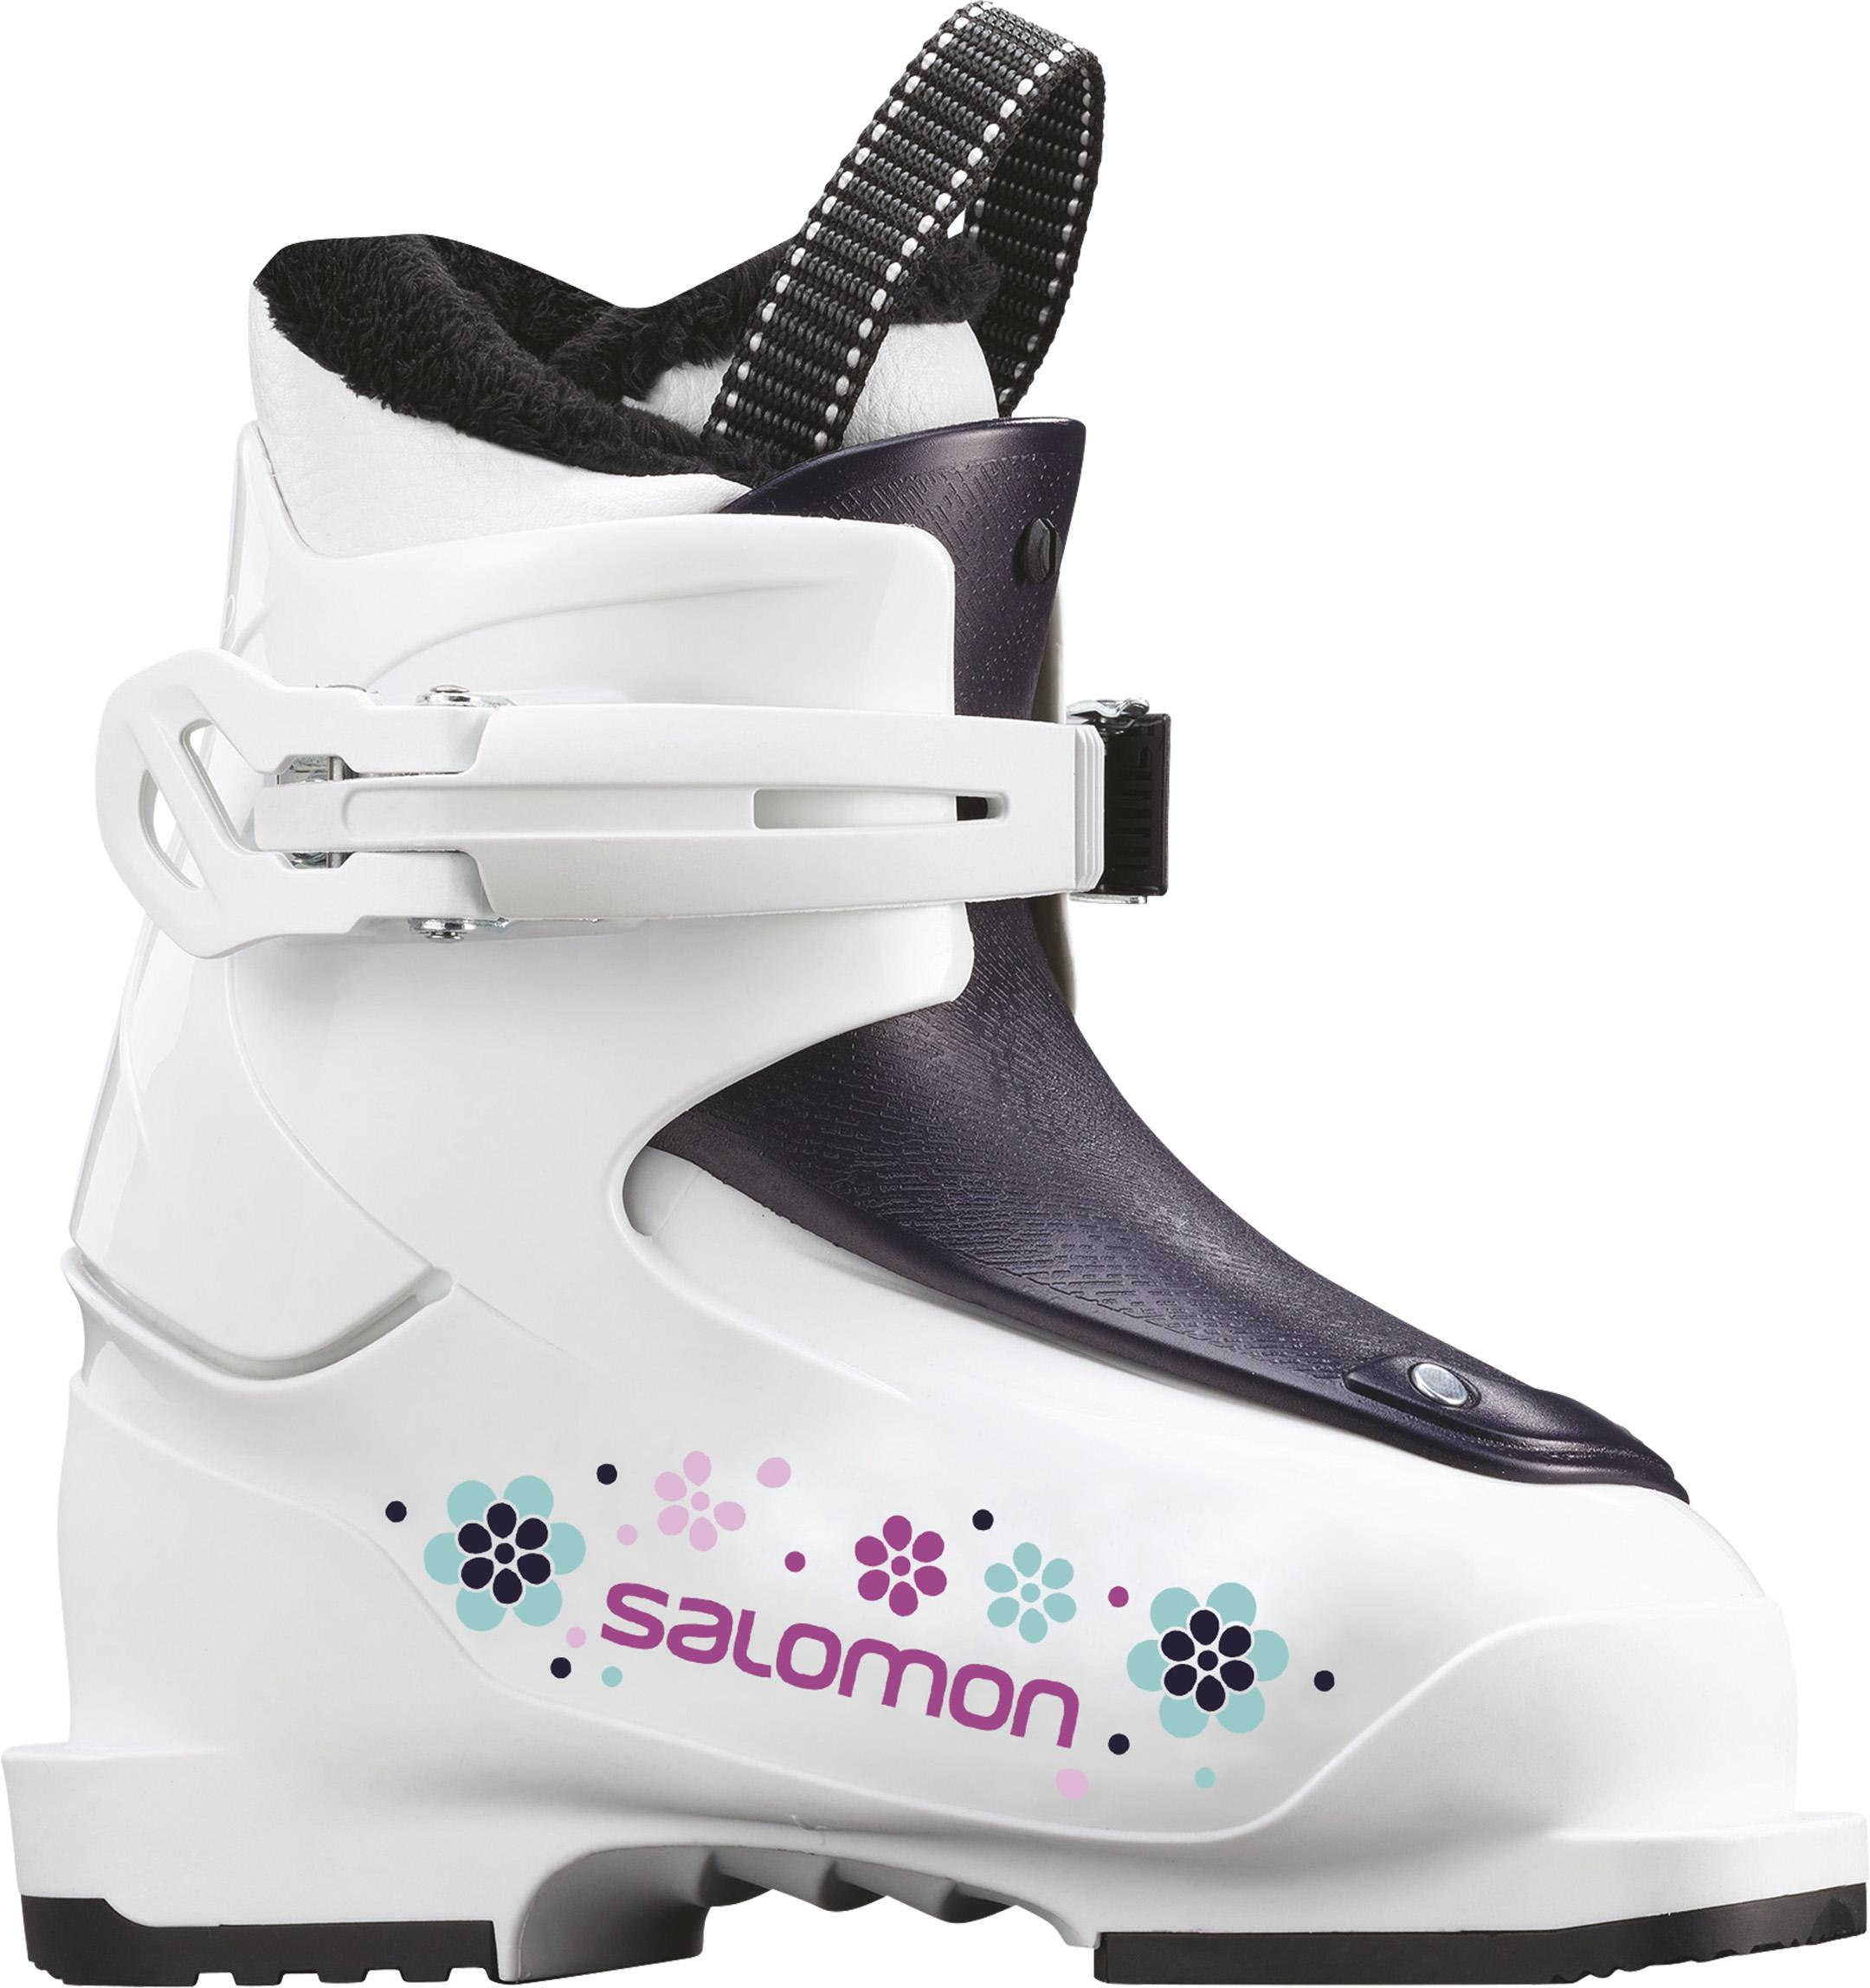 Boty Salomon T1 Girly White Rose violet tr 18 19  de5a23fadf